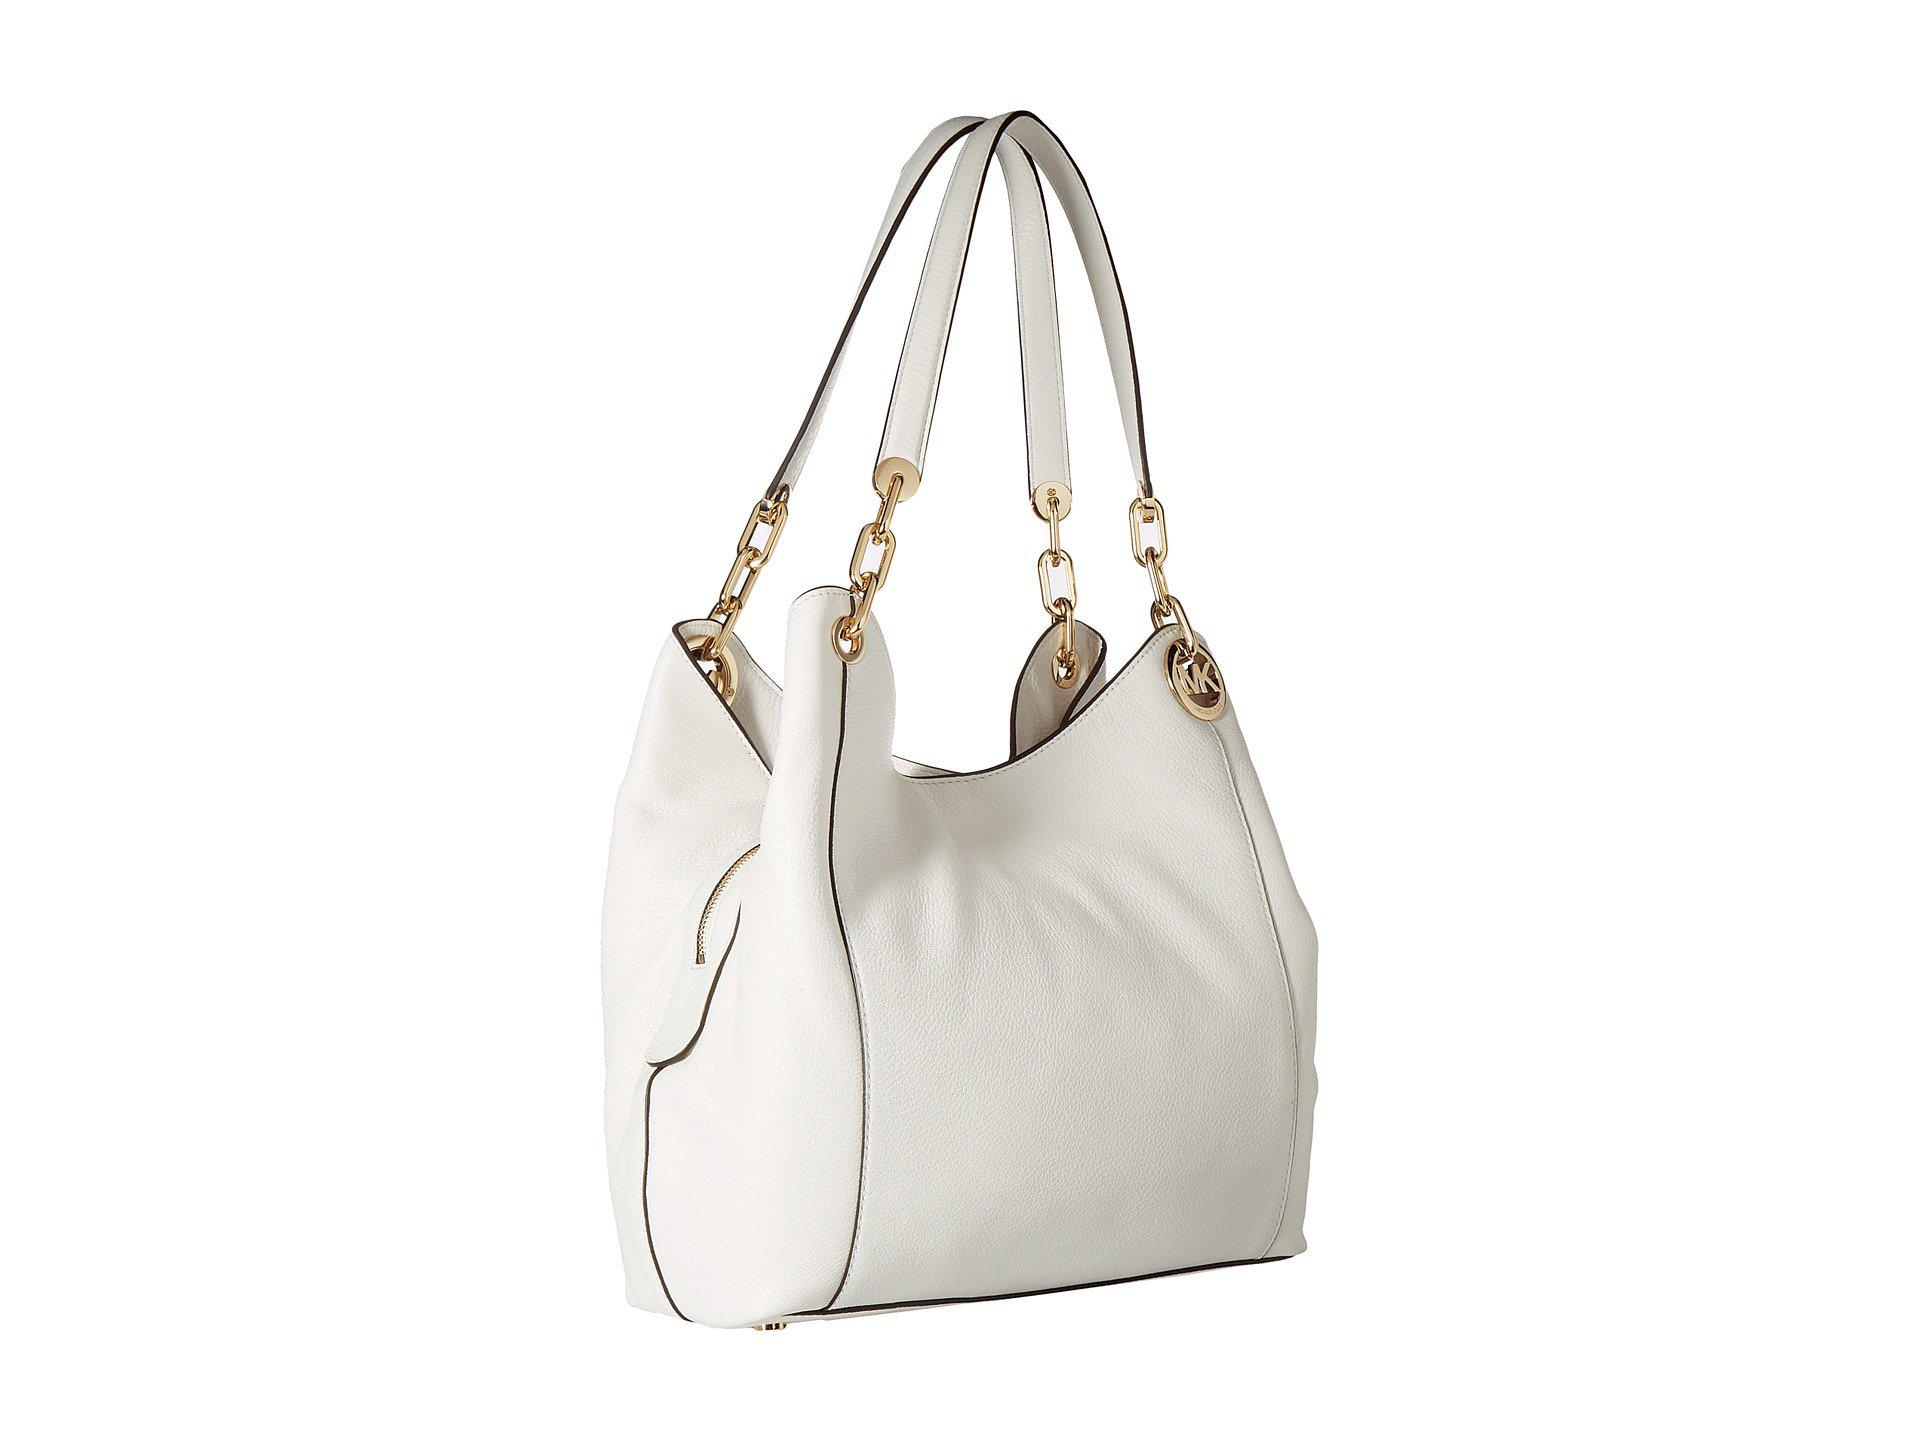 43d318ca81 Lyst - MICHAEL Michael Kors Fulton Large Charm Shoulder Tote in White